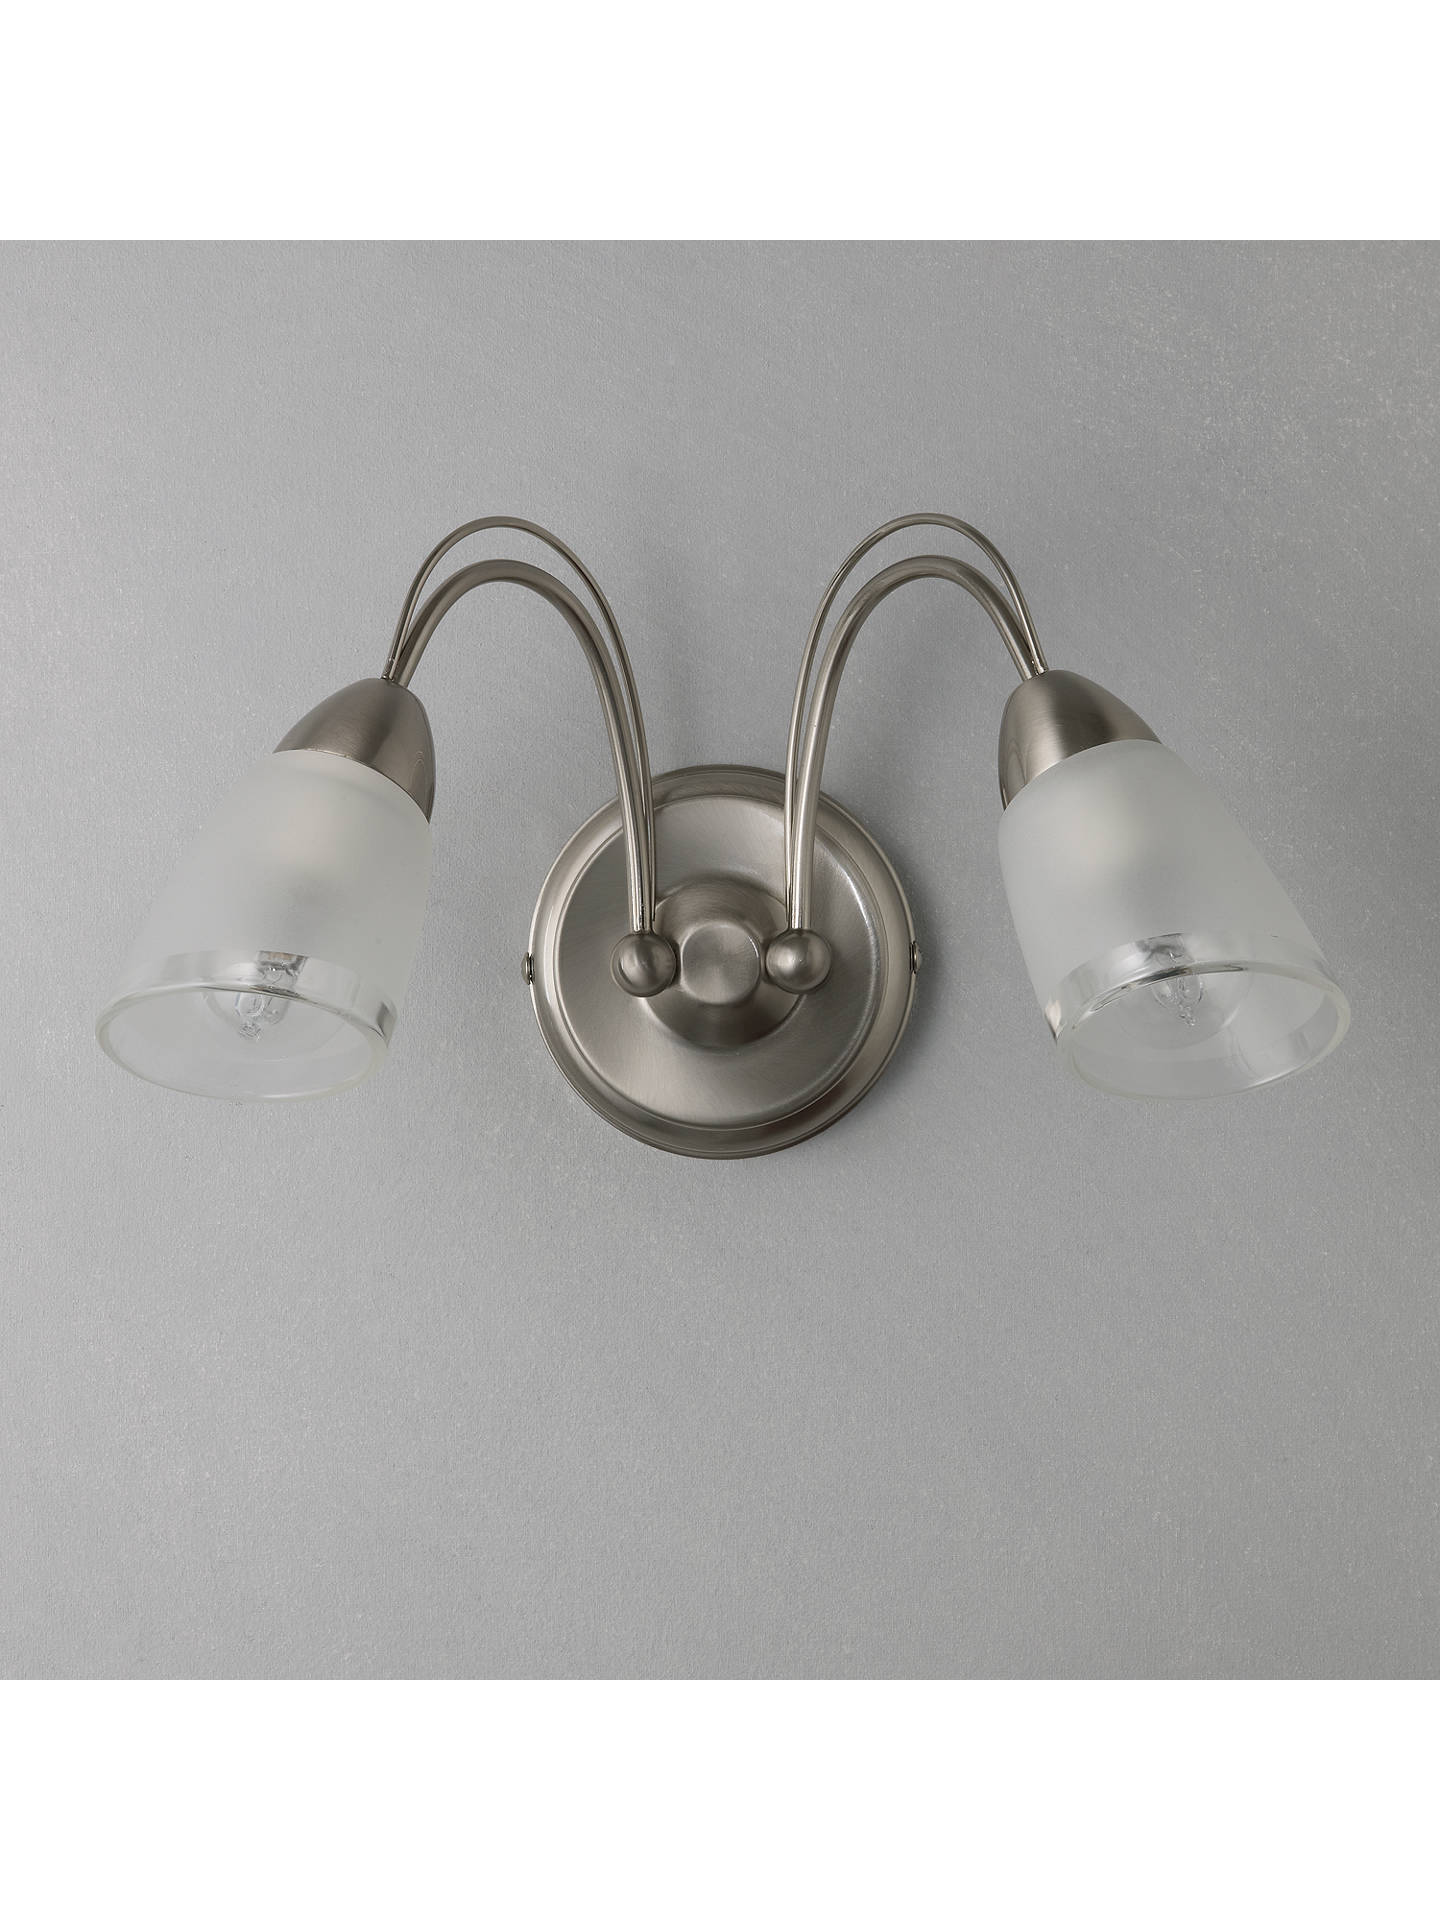 Buy John Lewis & Partners Mizar Wall Light, 2 Arm, Chrome Online at johnlewis.com